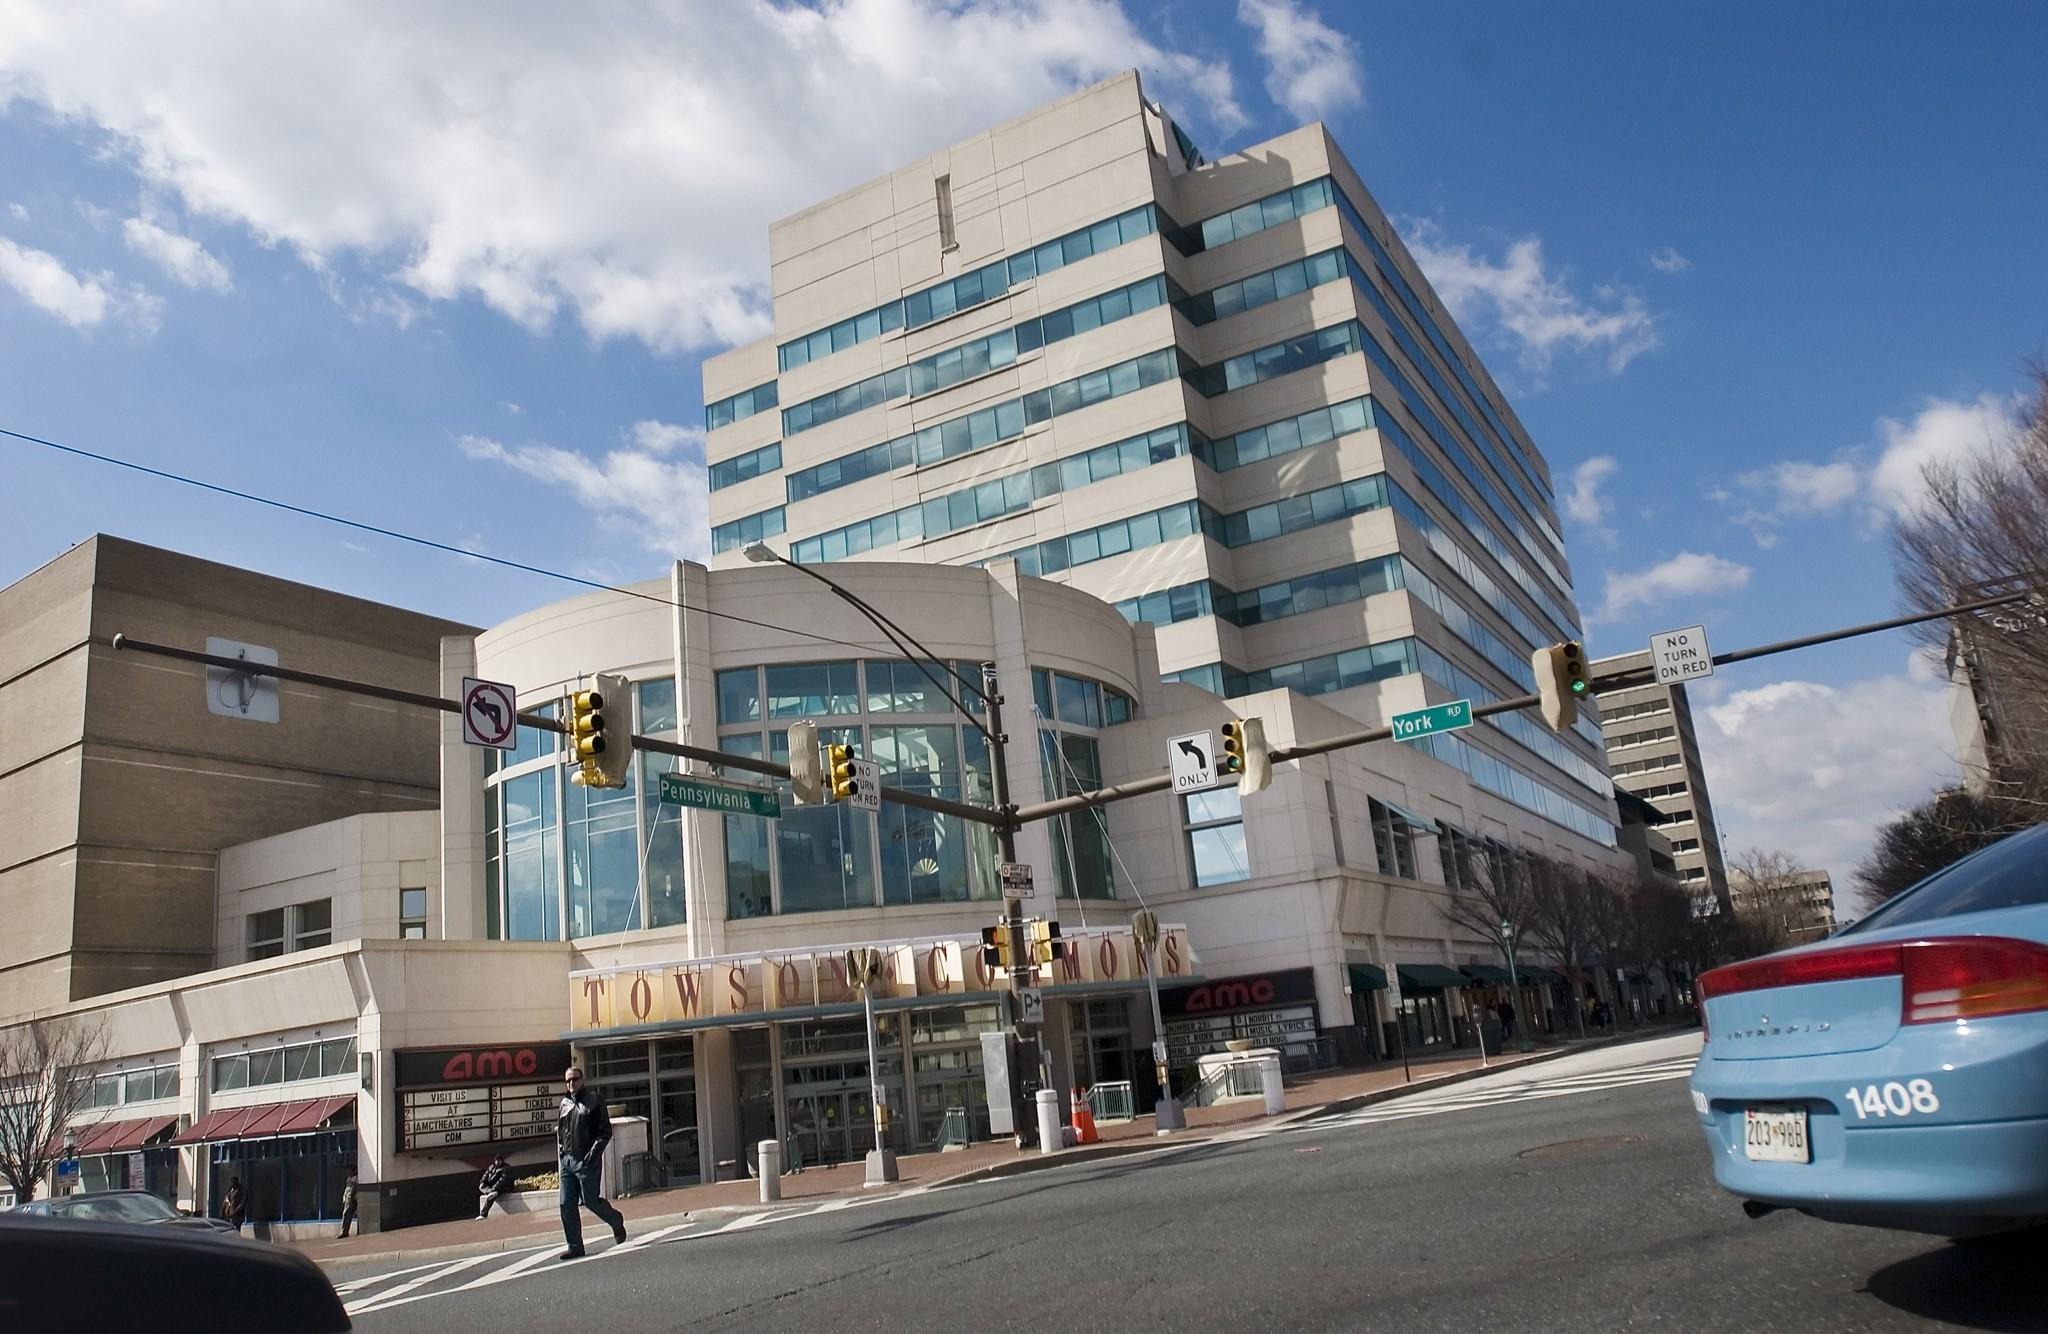 The Long Vacant Towson Commons Building At York Road And Pennsylvania Avenue Is Being Redeveloped With